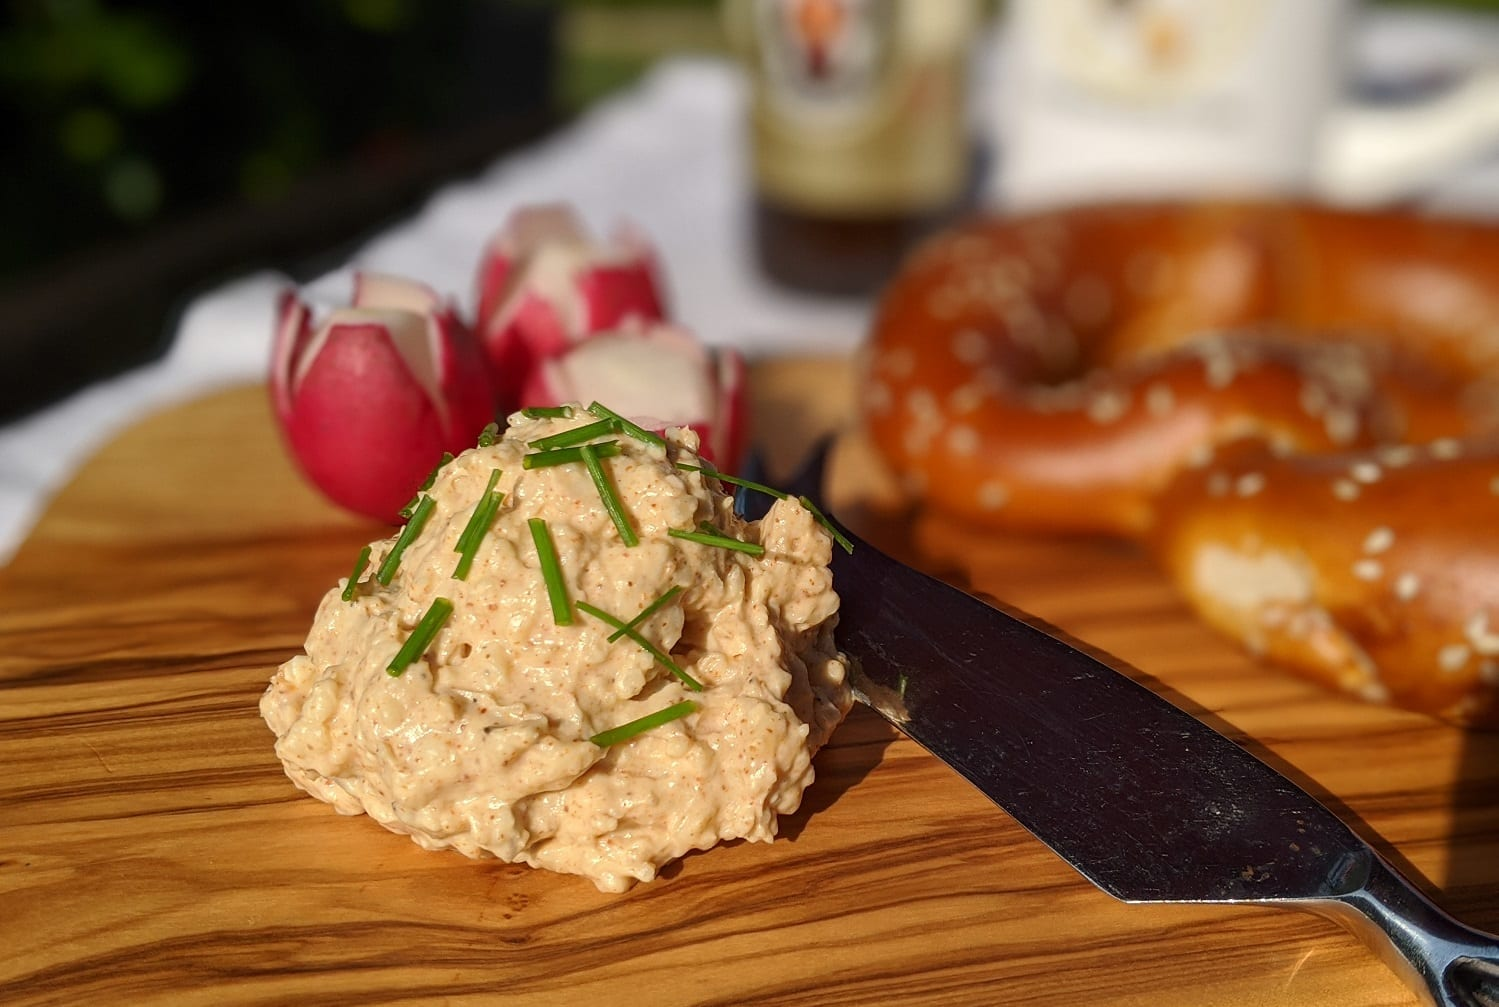 How to make Obatzda – German Beer Cheese Spread